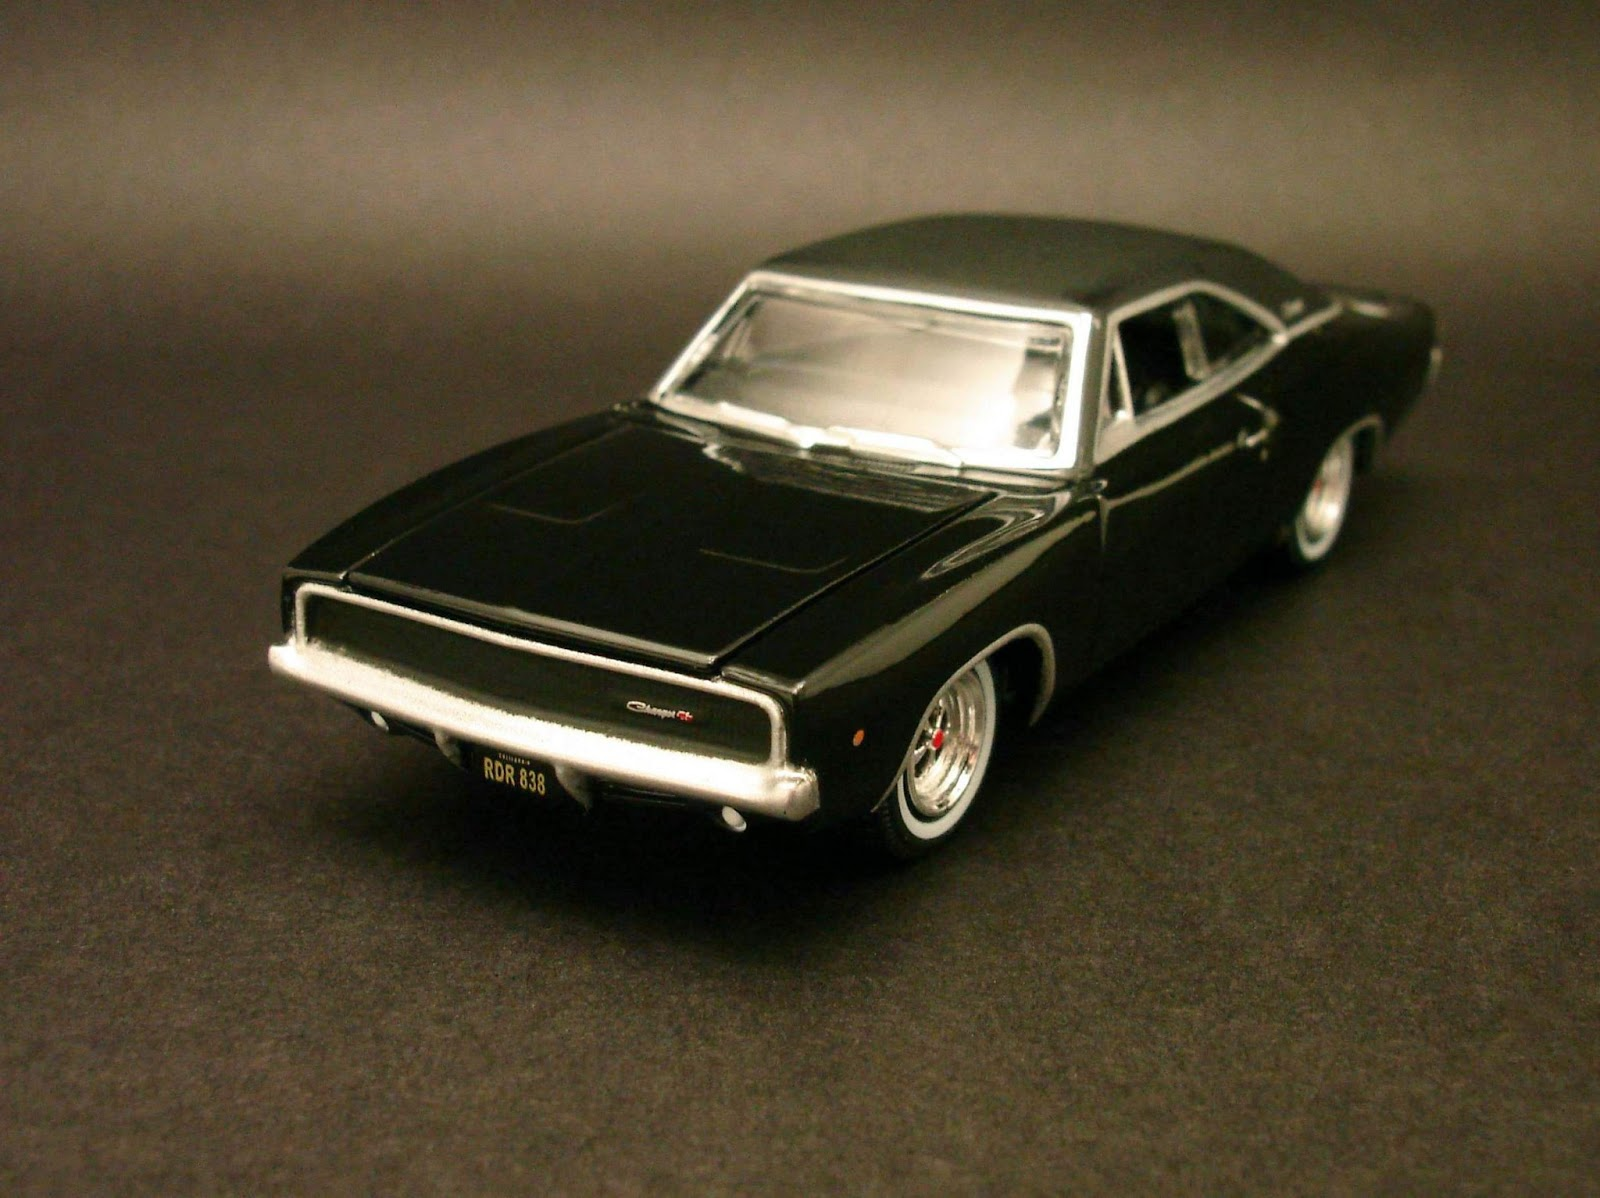 1 64 scale diecast from greenlight diorama series 1